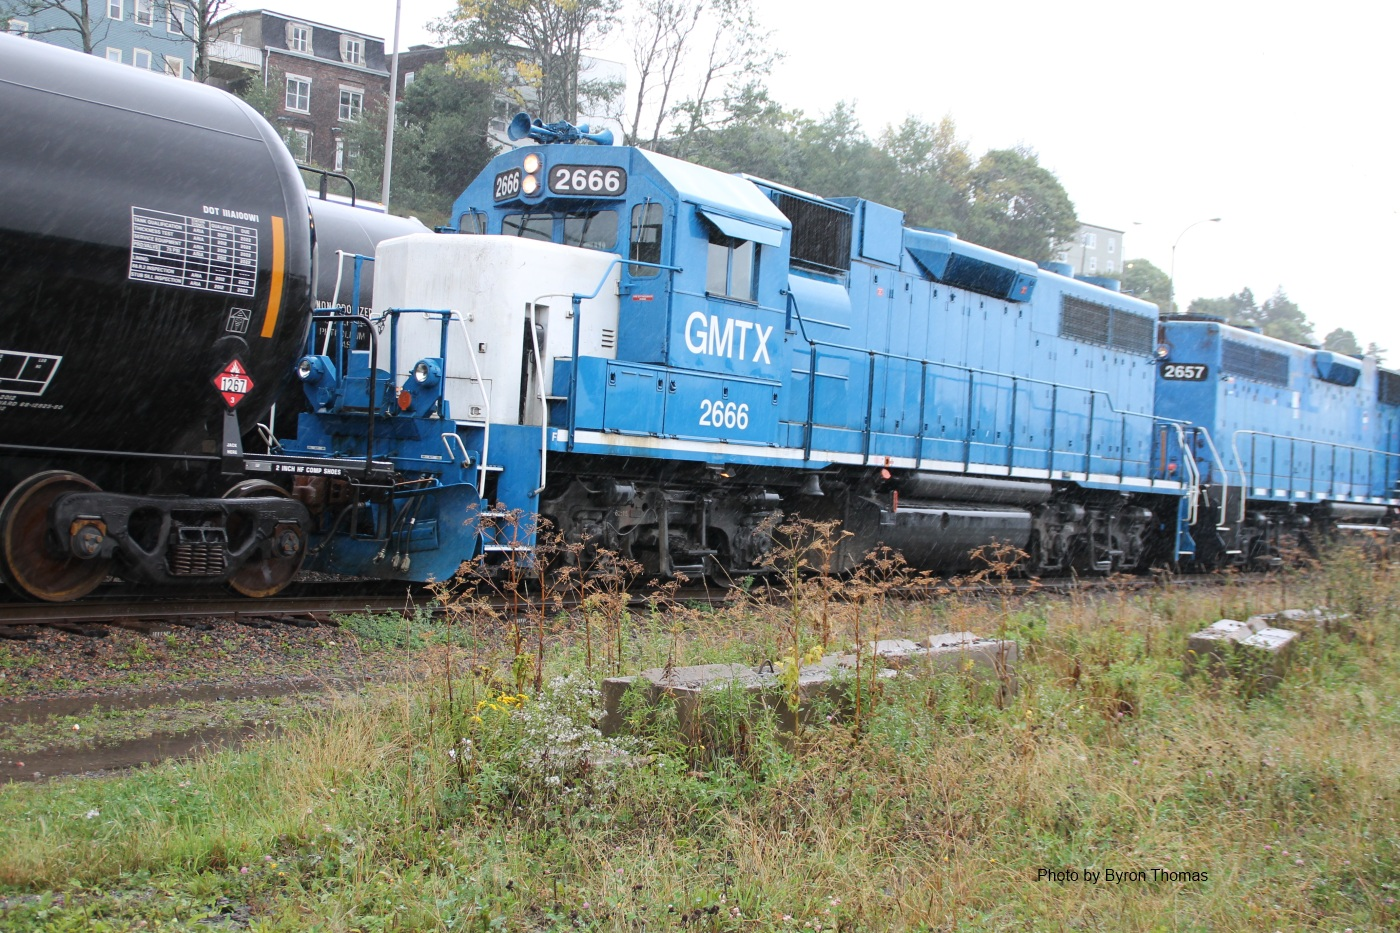 HLCX 2666 and 2657 in Saint John, NB 2012/09/05 by Byron Thomas